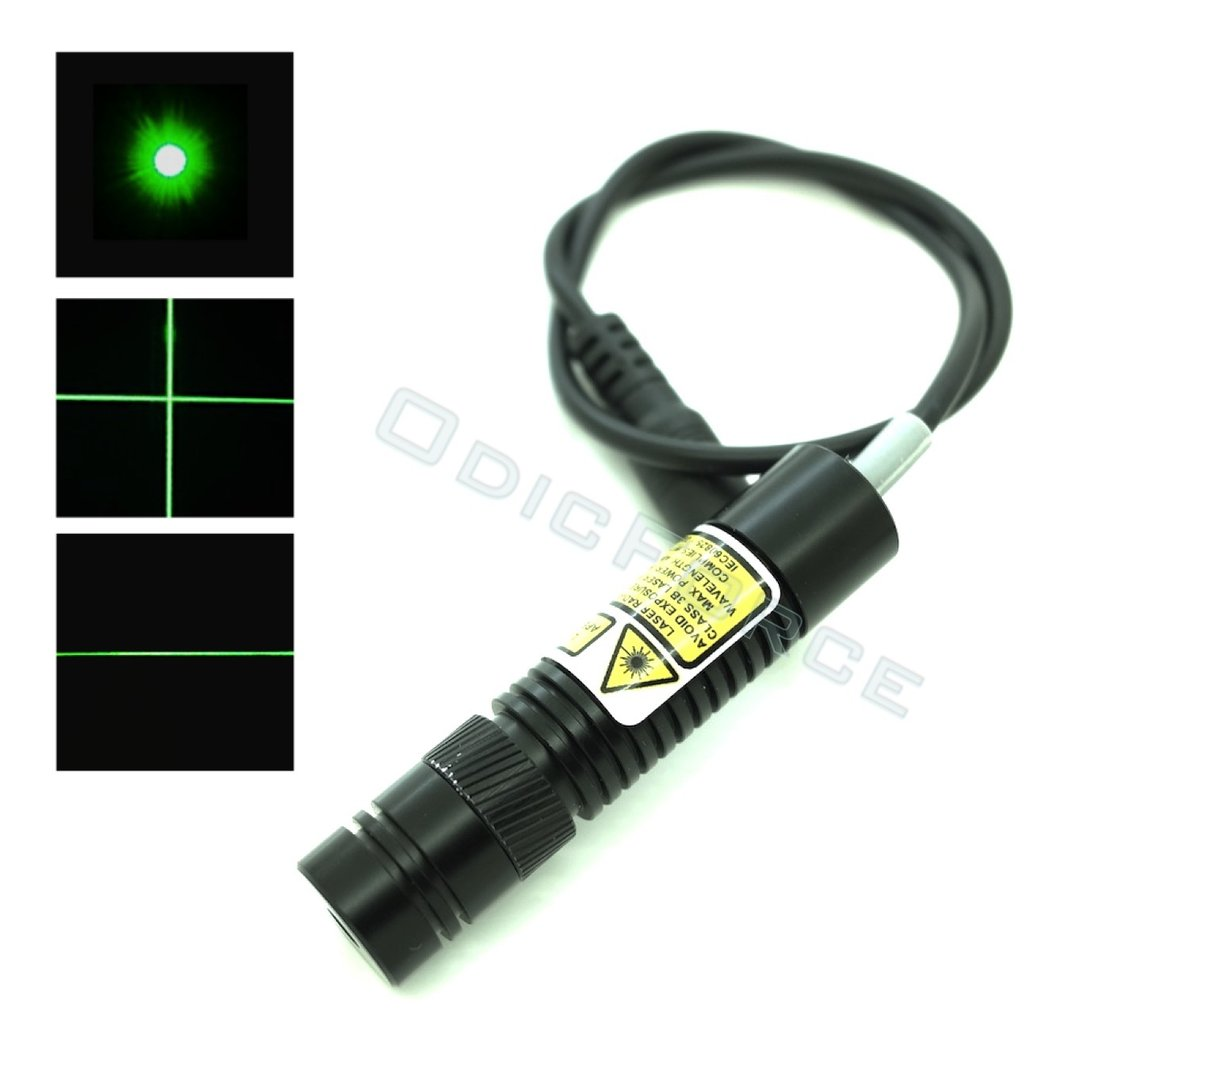 20mW Green (520nm) Adjustable Locking Focus Direct Diode Module Dot, Line and Cross (16mm, 3-5V)